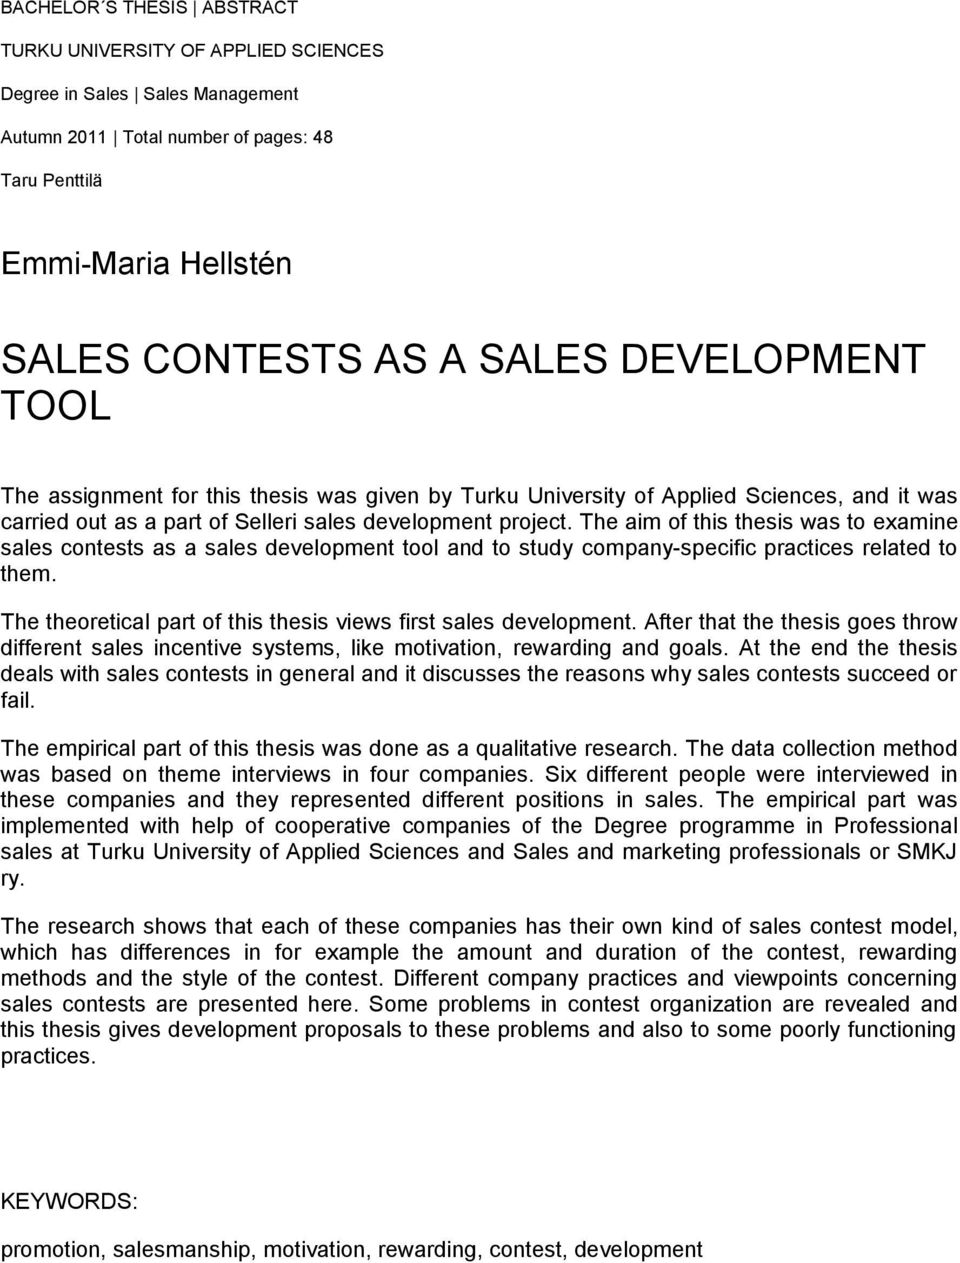 The aim of this thesis was to examine sales contests as a sales development tool and to study company-specific practices related to them.